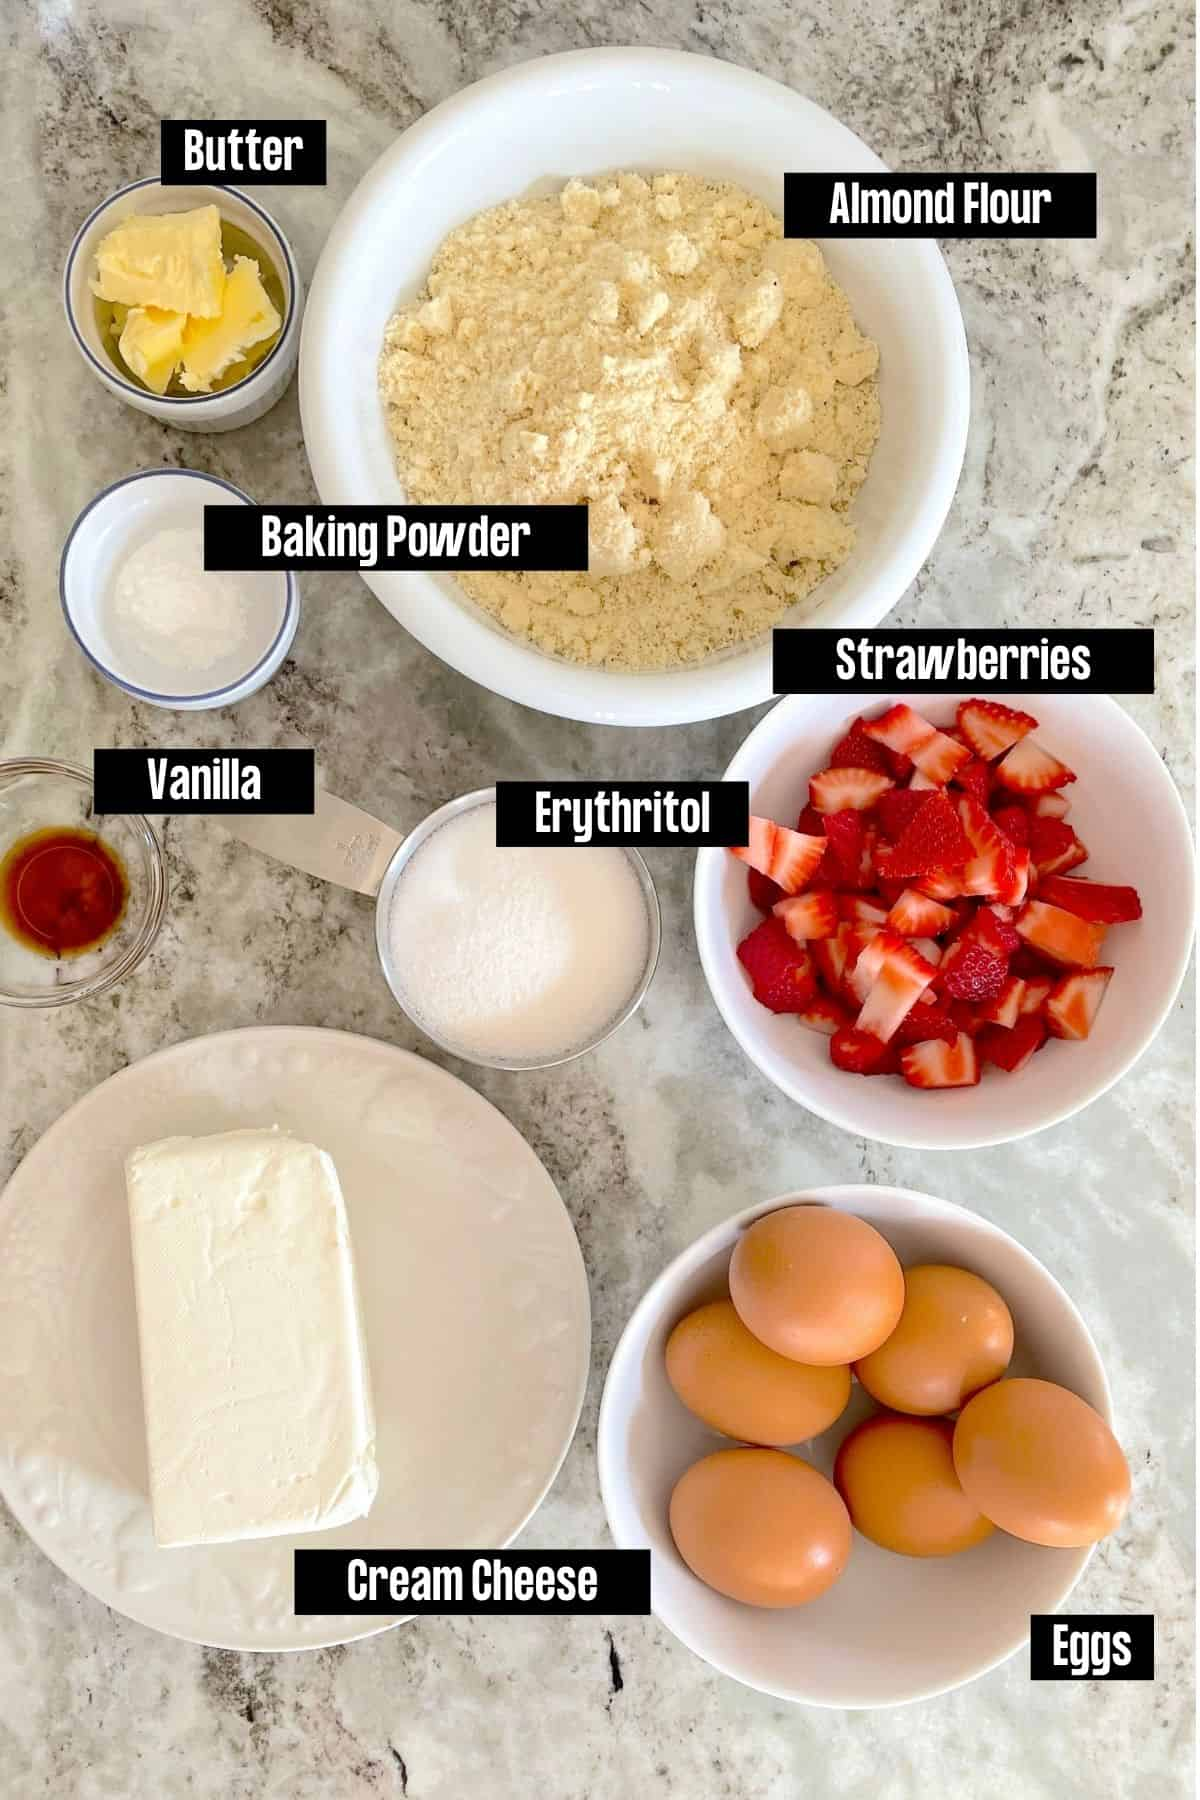 photo of ingredients for recipe